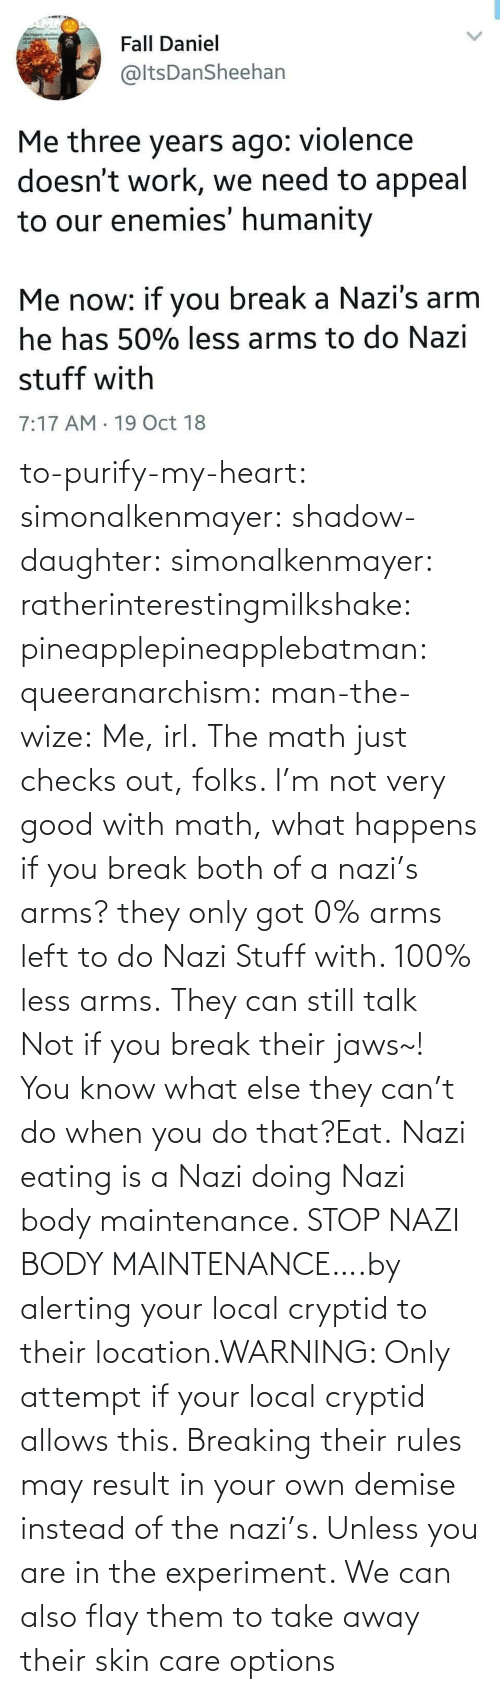 Stuff: to-purify-my-heart:  simonalkenmayer:  shadow-daughter: simonalkenmayer:  ratherinterestingmilkshake:  pineapplepineapplebatman:  queeranarchism:  man-the-wize: Me, irl. The math just checks out, folks.     I'm not very good with math, what happens if you break both of a nazi's arms?  they only got 0% arms left to do Nazi Stuff with. 100% less arms.  They can still talk  Not if you break their jaws~!  You know what else they can't do when you do that?Eat.   Nazi eating is a Nazi doing Nazi body maintenance. STOP NAZI BODY MAINTENANCE….by alerting your local cryptid to their location.WARNING: Only attempt if your local cryptid allows this. Breaking their rules may result in your own demise instead of the nazi's. Unless you are in the experiment.    We can also flay them to take away their skin care options